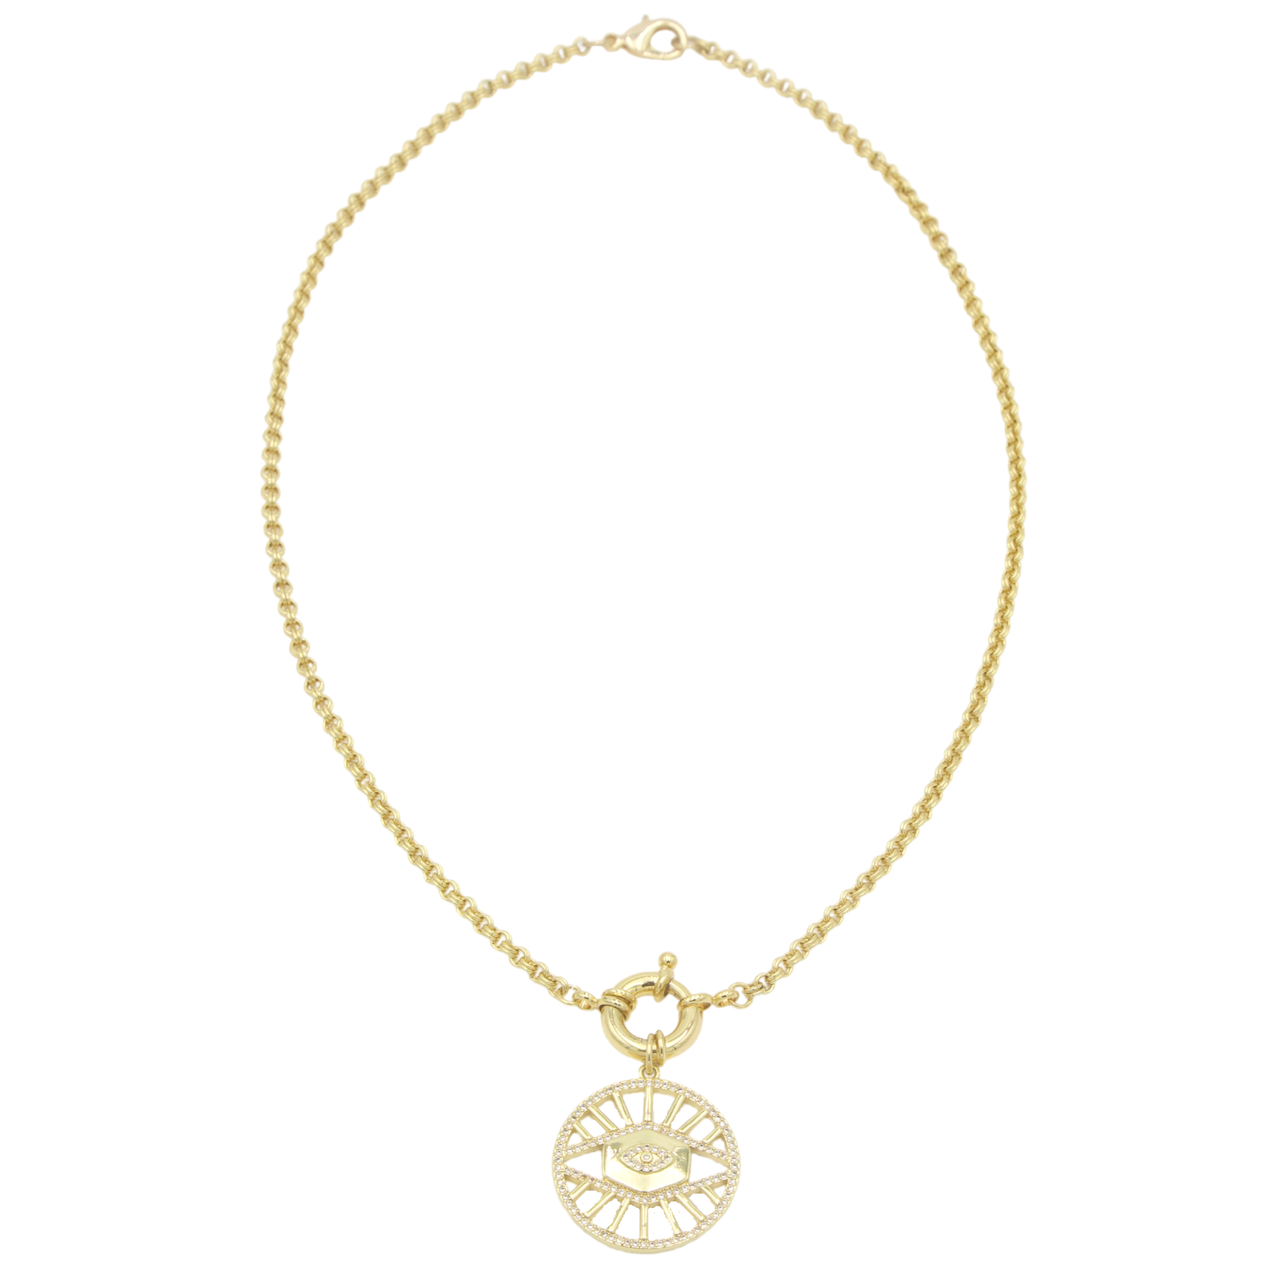 AW Boutique's gold filled 18 inch rolo chain necklace (link 3mm) is finished with a front sailor's clasp and Evil Eye medallion finished with clear cubic zirconia crystals.